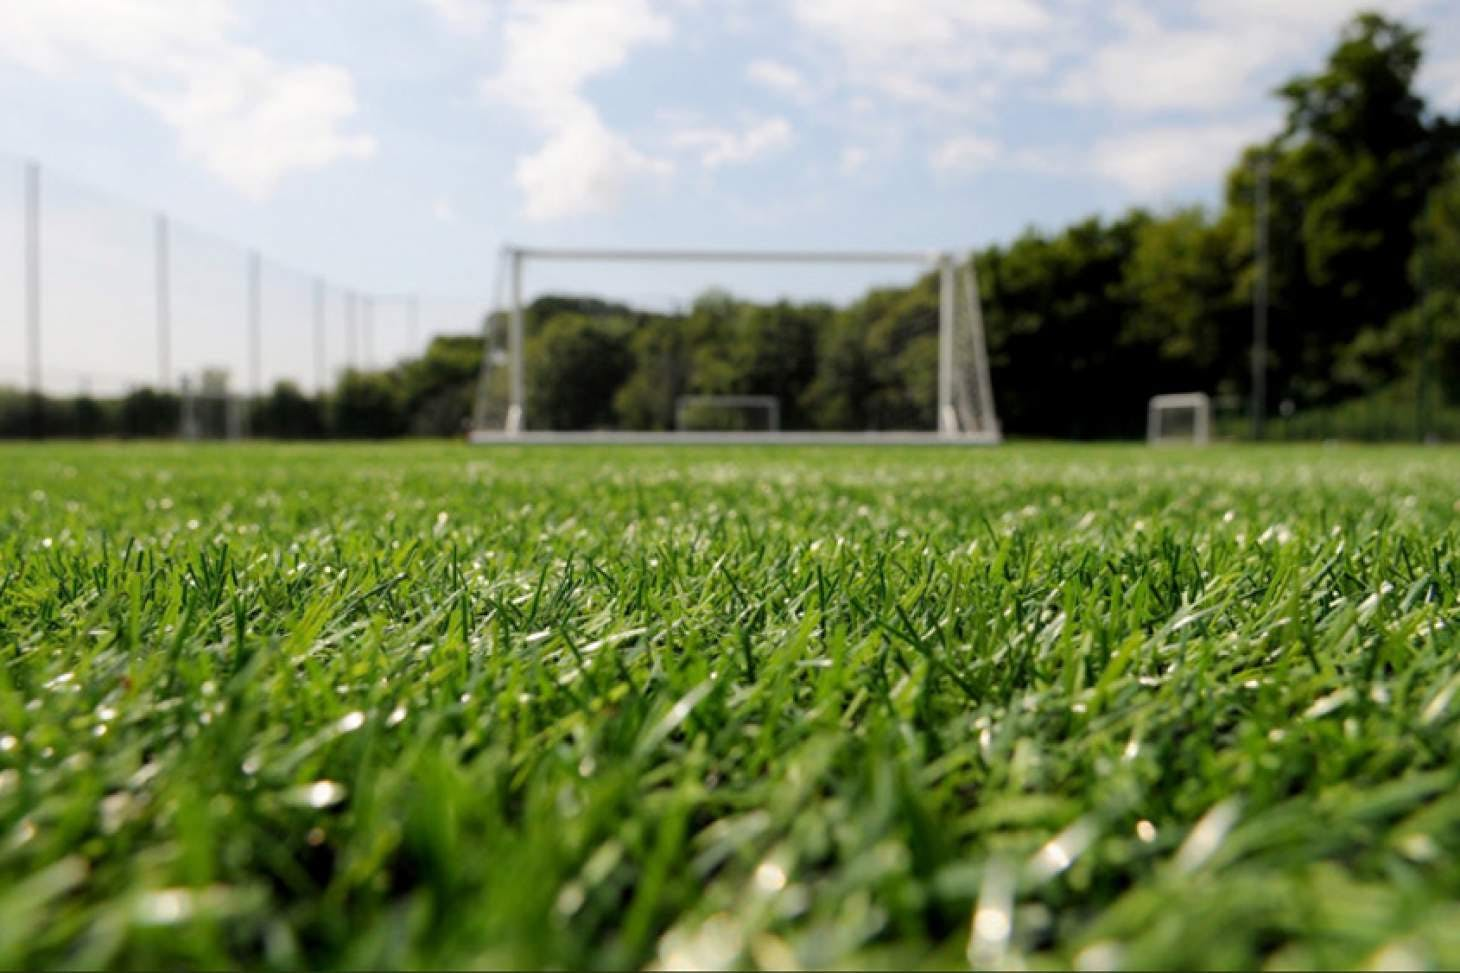 Falmer Sports Complex 11 a side | Grass football pitch